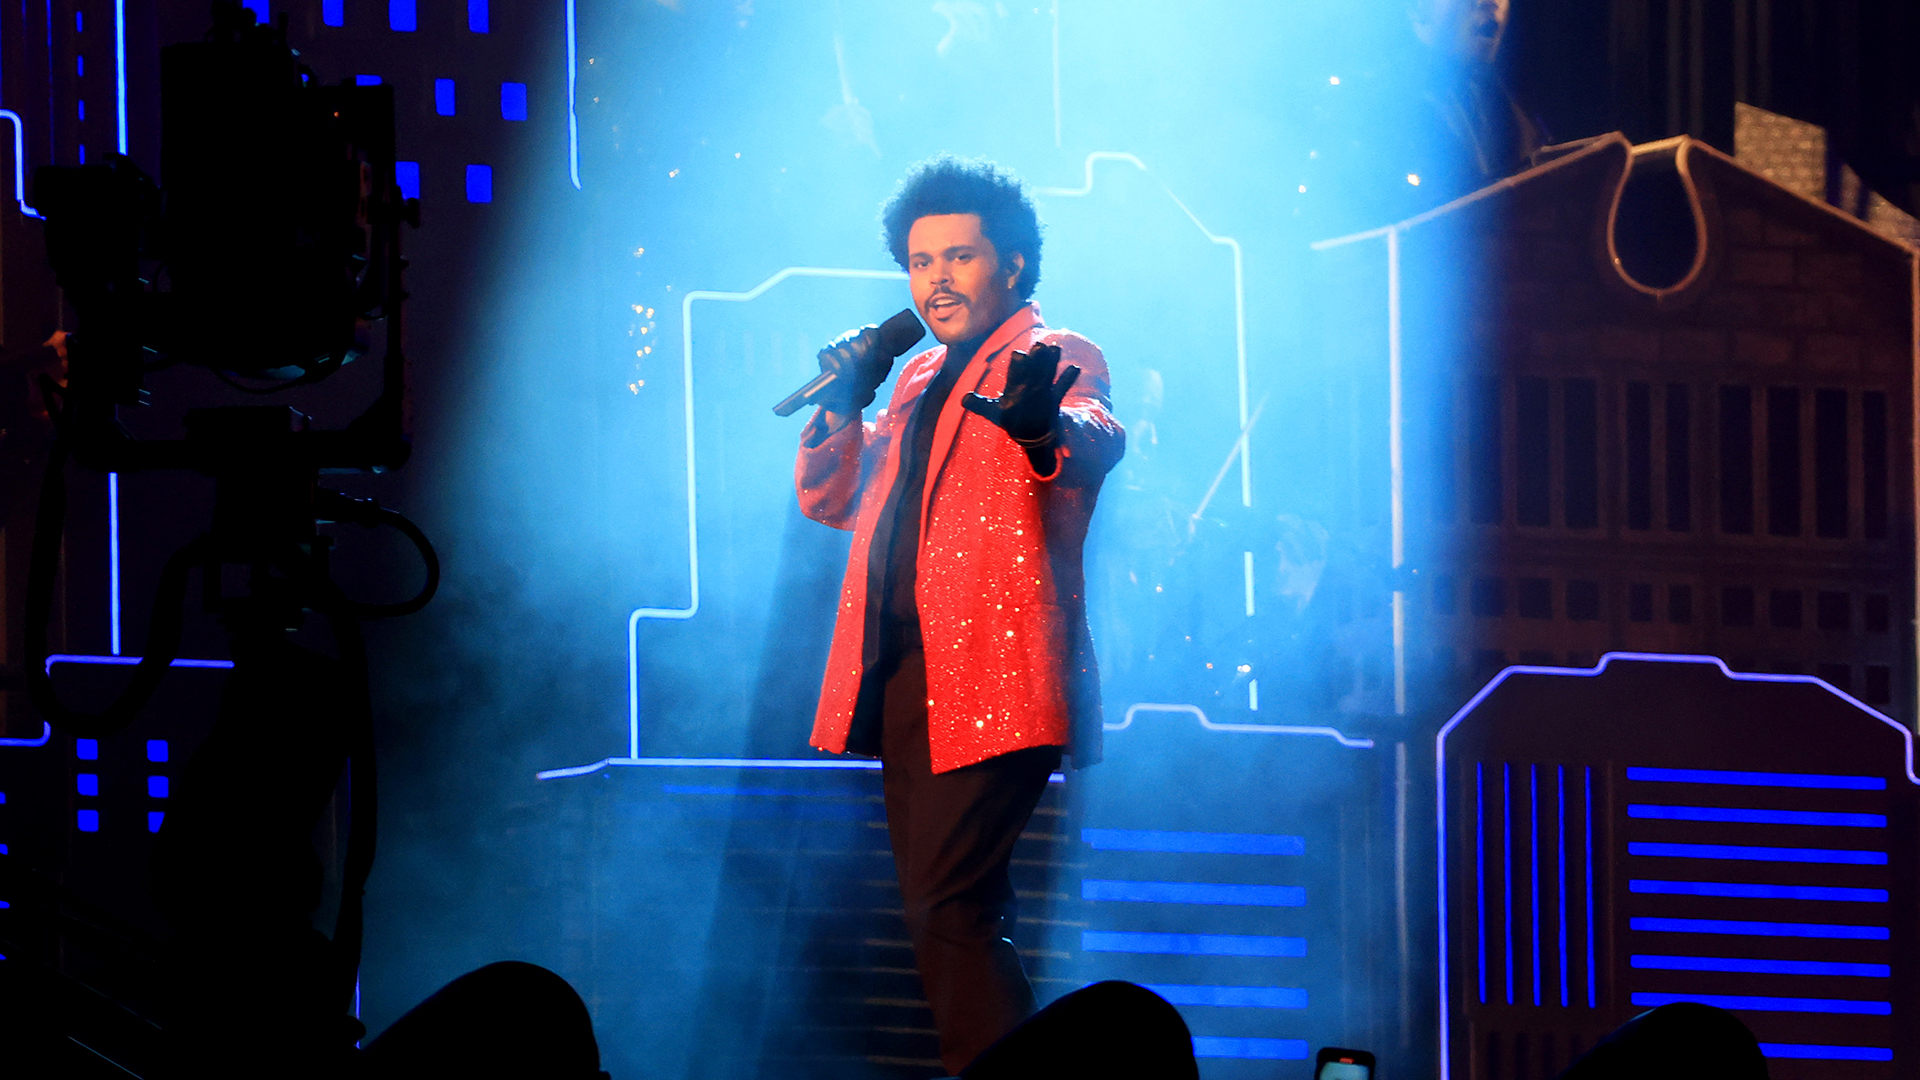 The Weeknd's Super Bowl Halftime Performance Getting a Full-Length Showtime Documentary